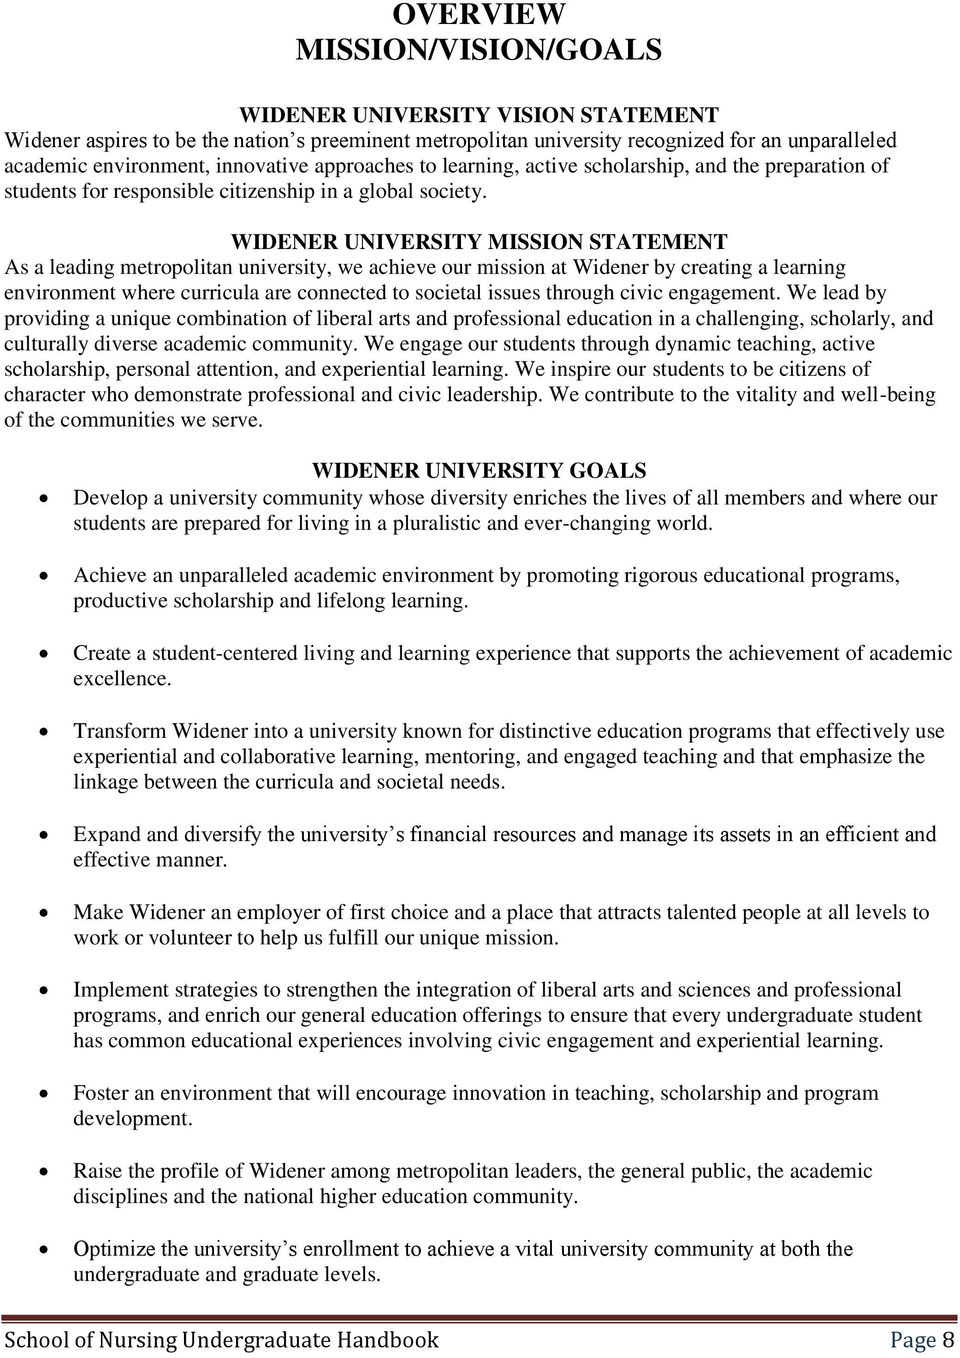 WIDENER UNIVERSITY MISSION STATEMENT As a leading metropolitan university, we achieve our mission at Widener by creating a learning environment where curricula are connected to societal issues